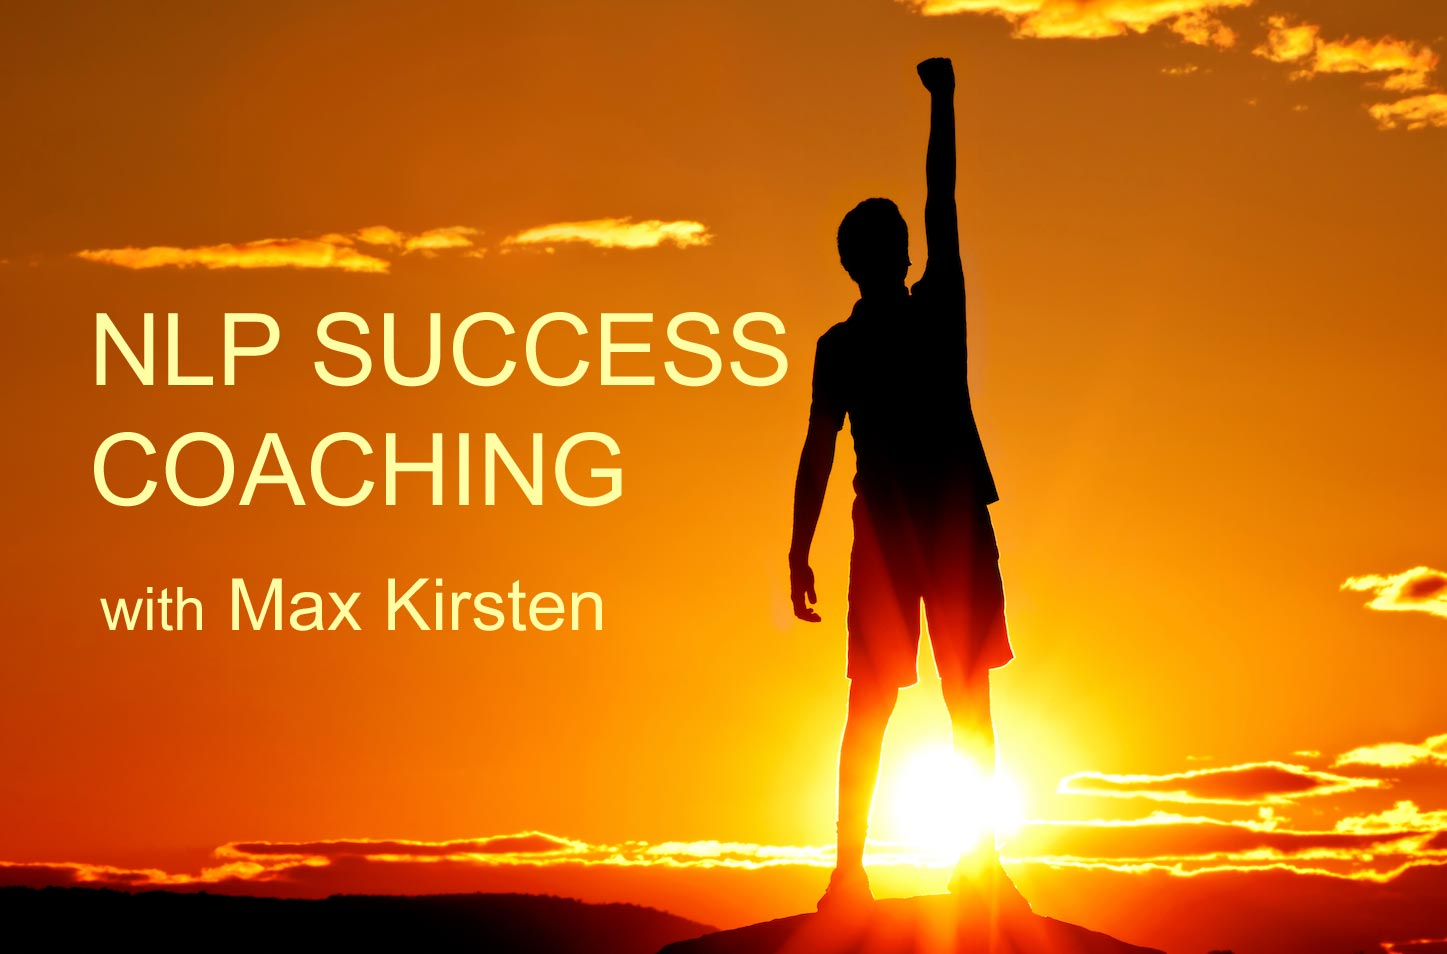 NLP Success Coaching With Max Kirsten